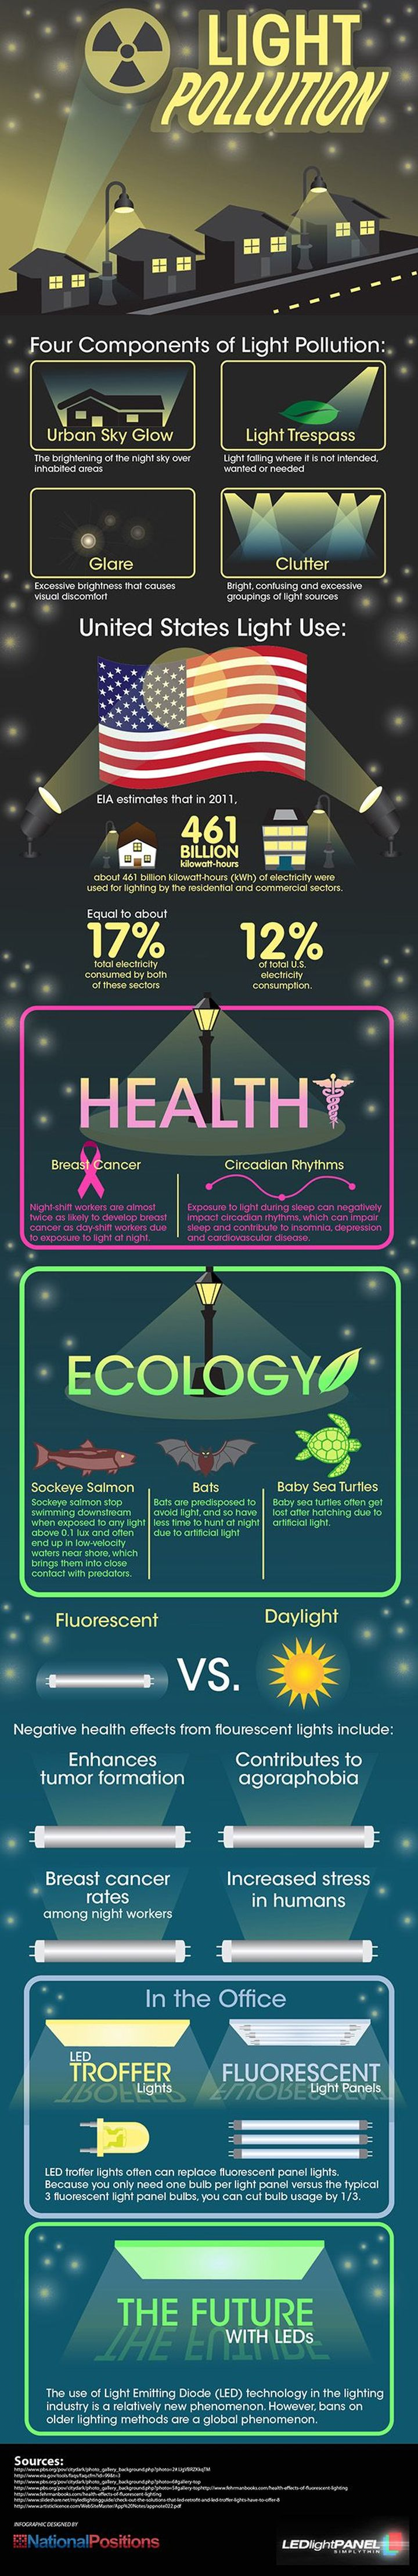 light pollution infographic